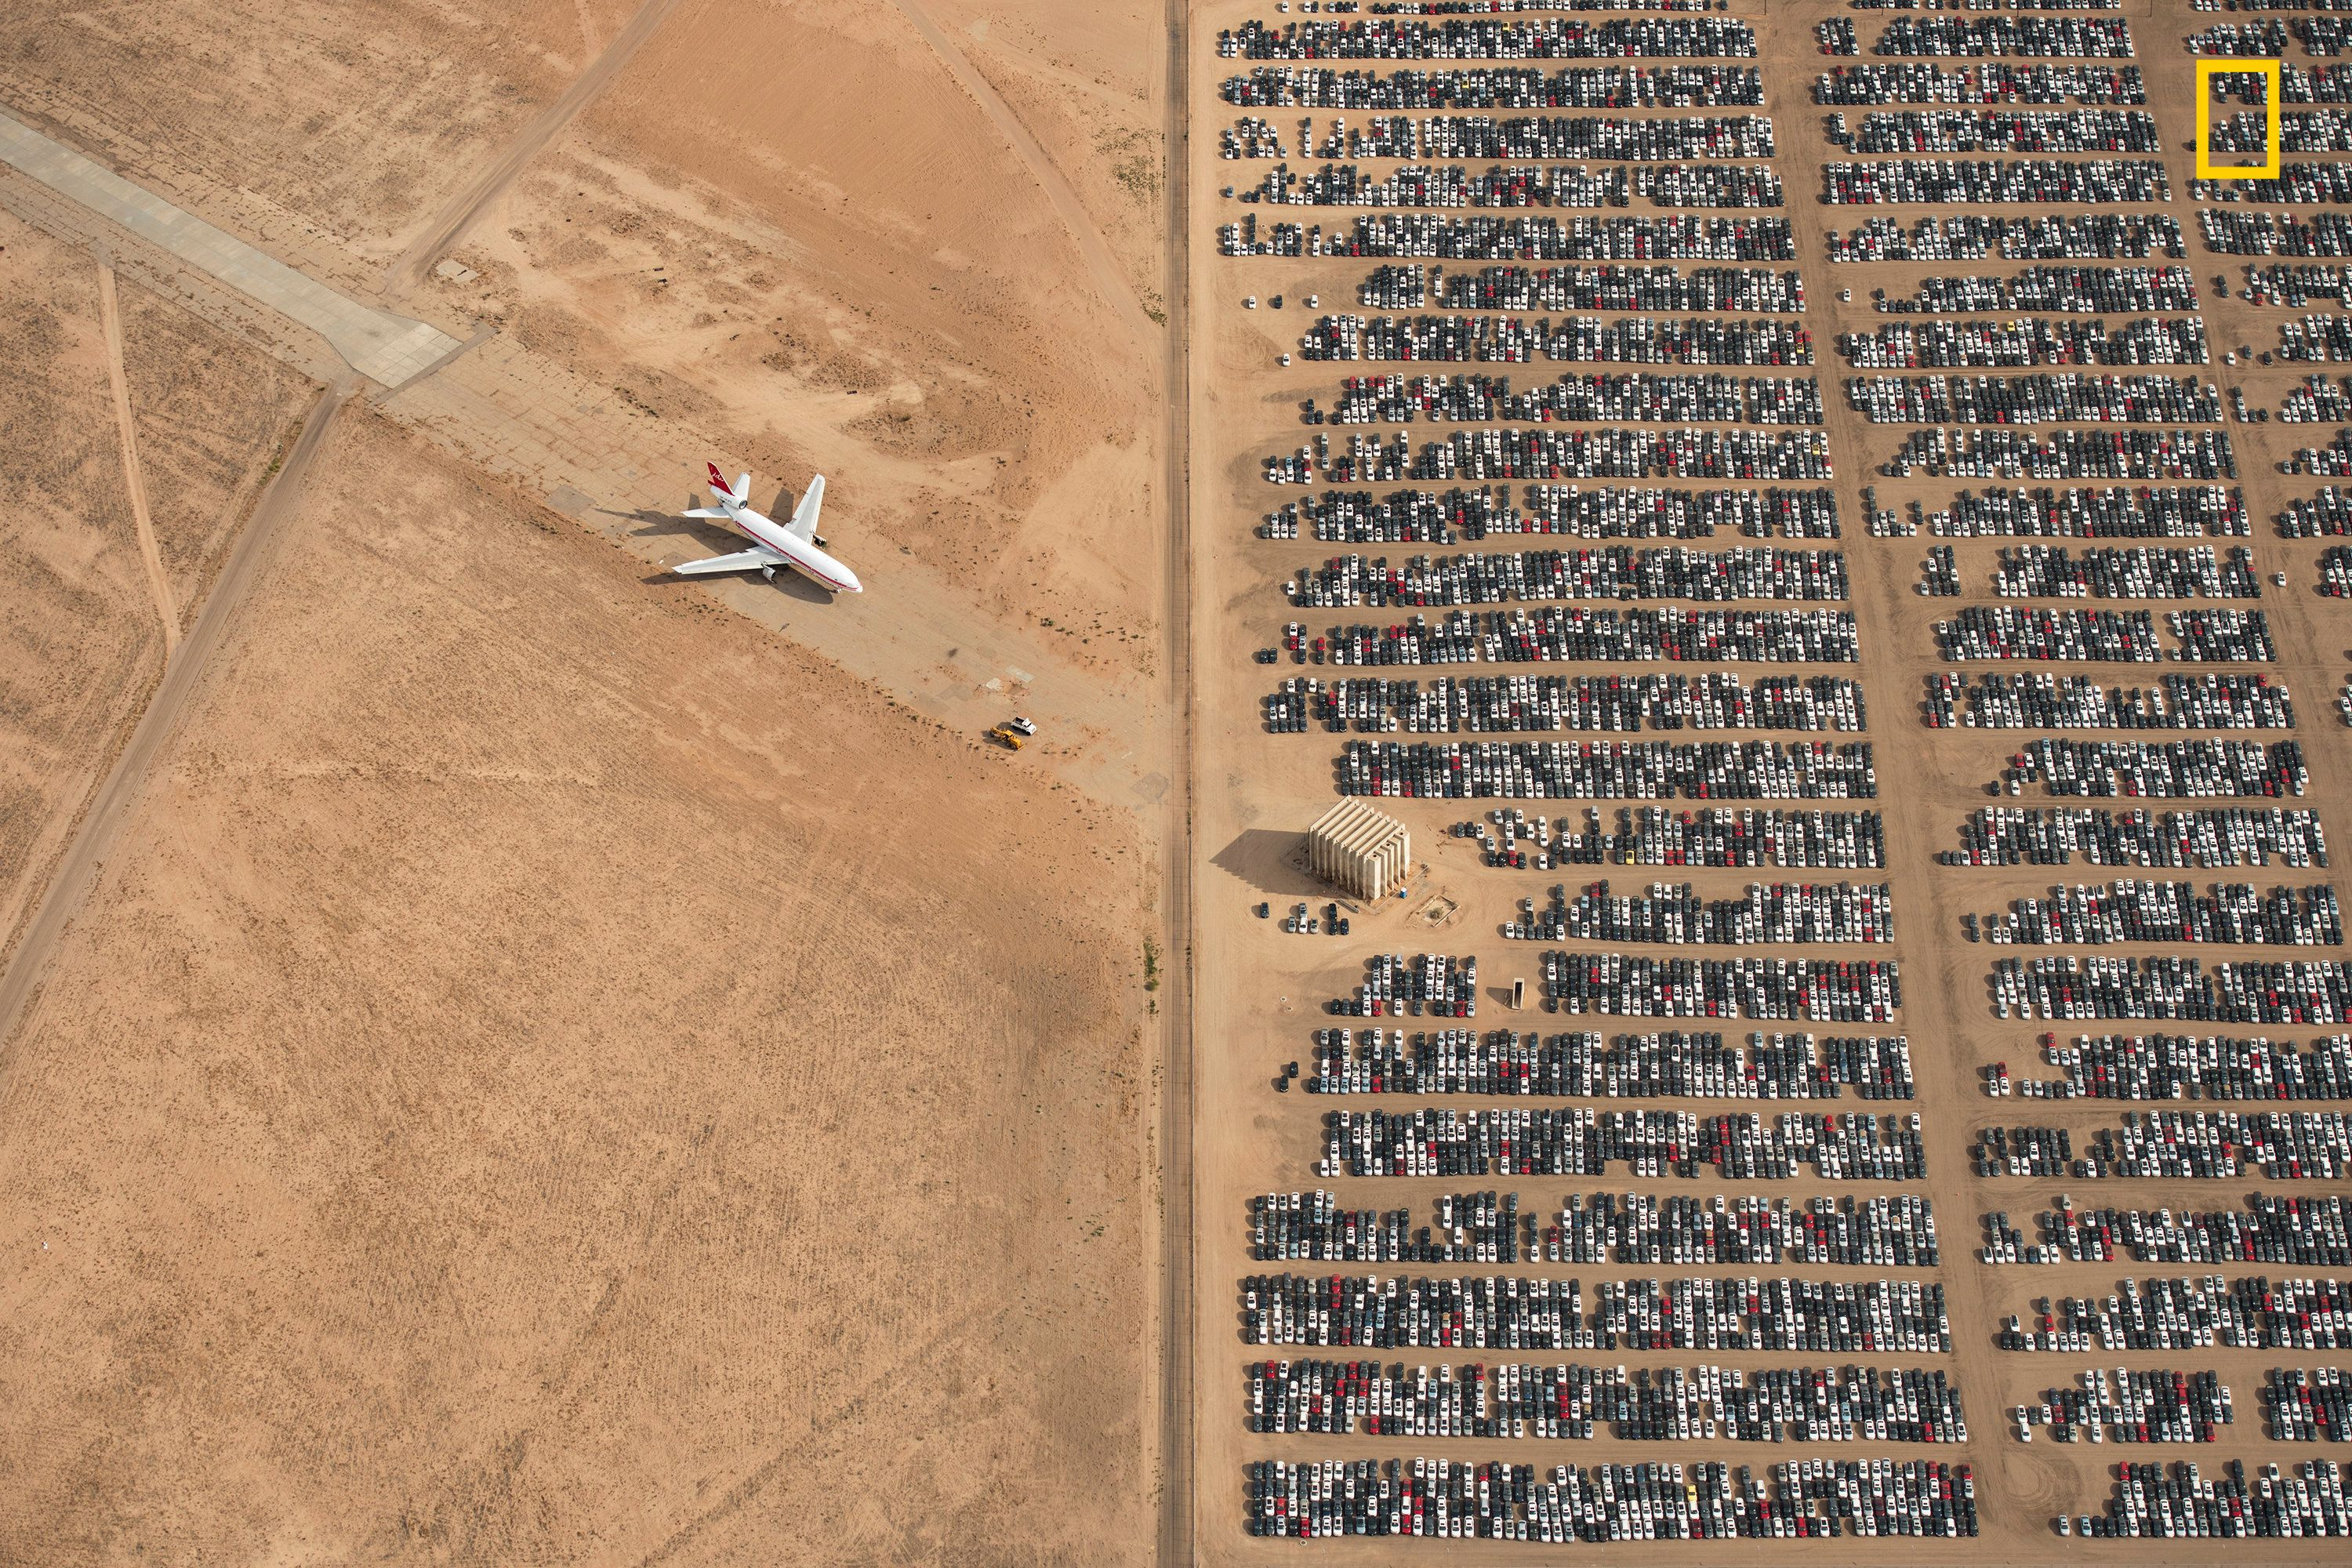 Grand Prize Winner - Thousands of Volkswagen and Audi cars sit idle in the middle of California's Mojave Desert. Models